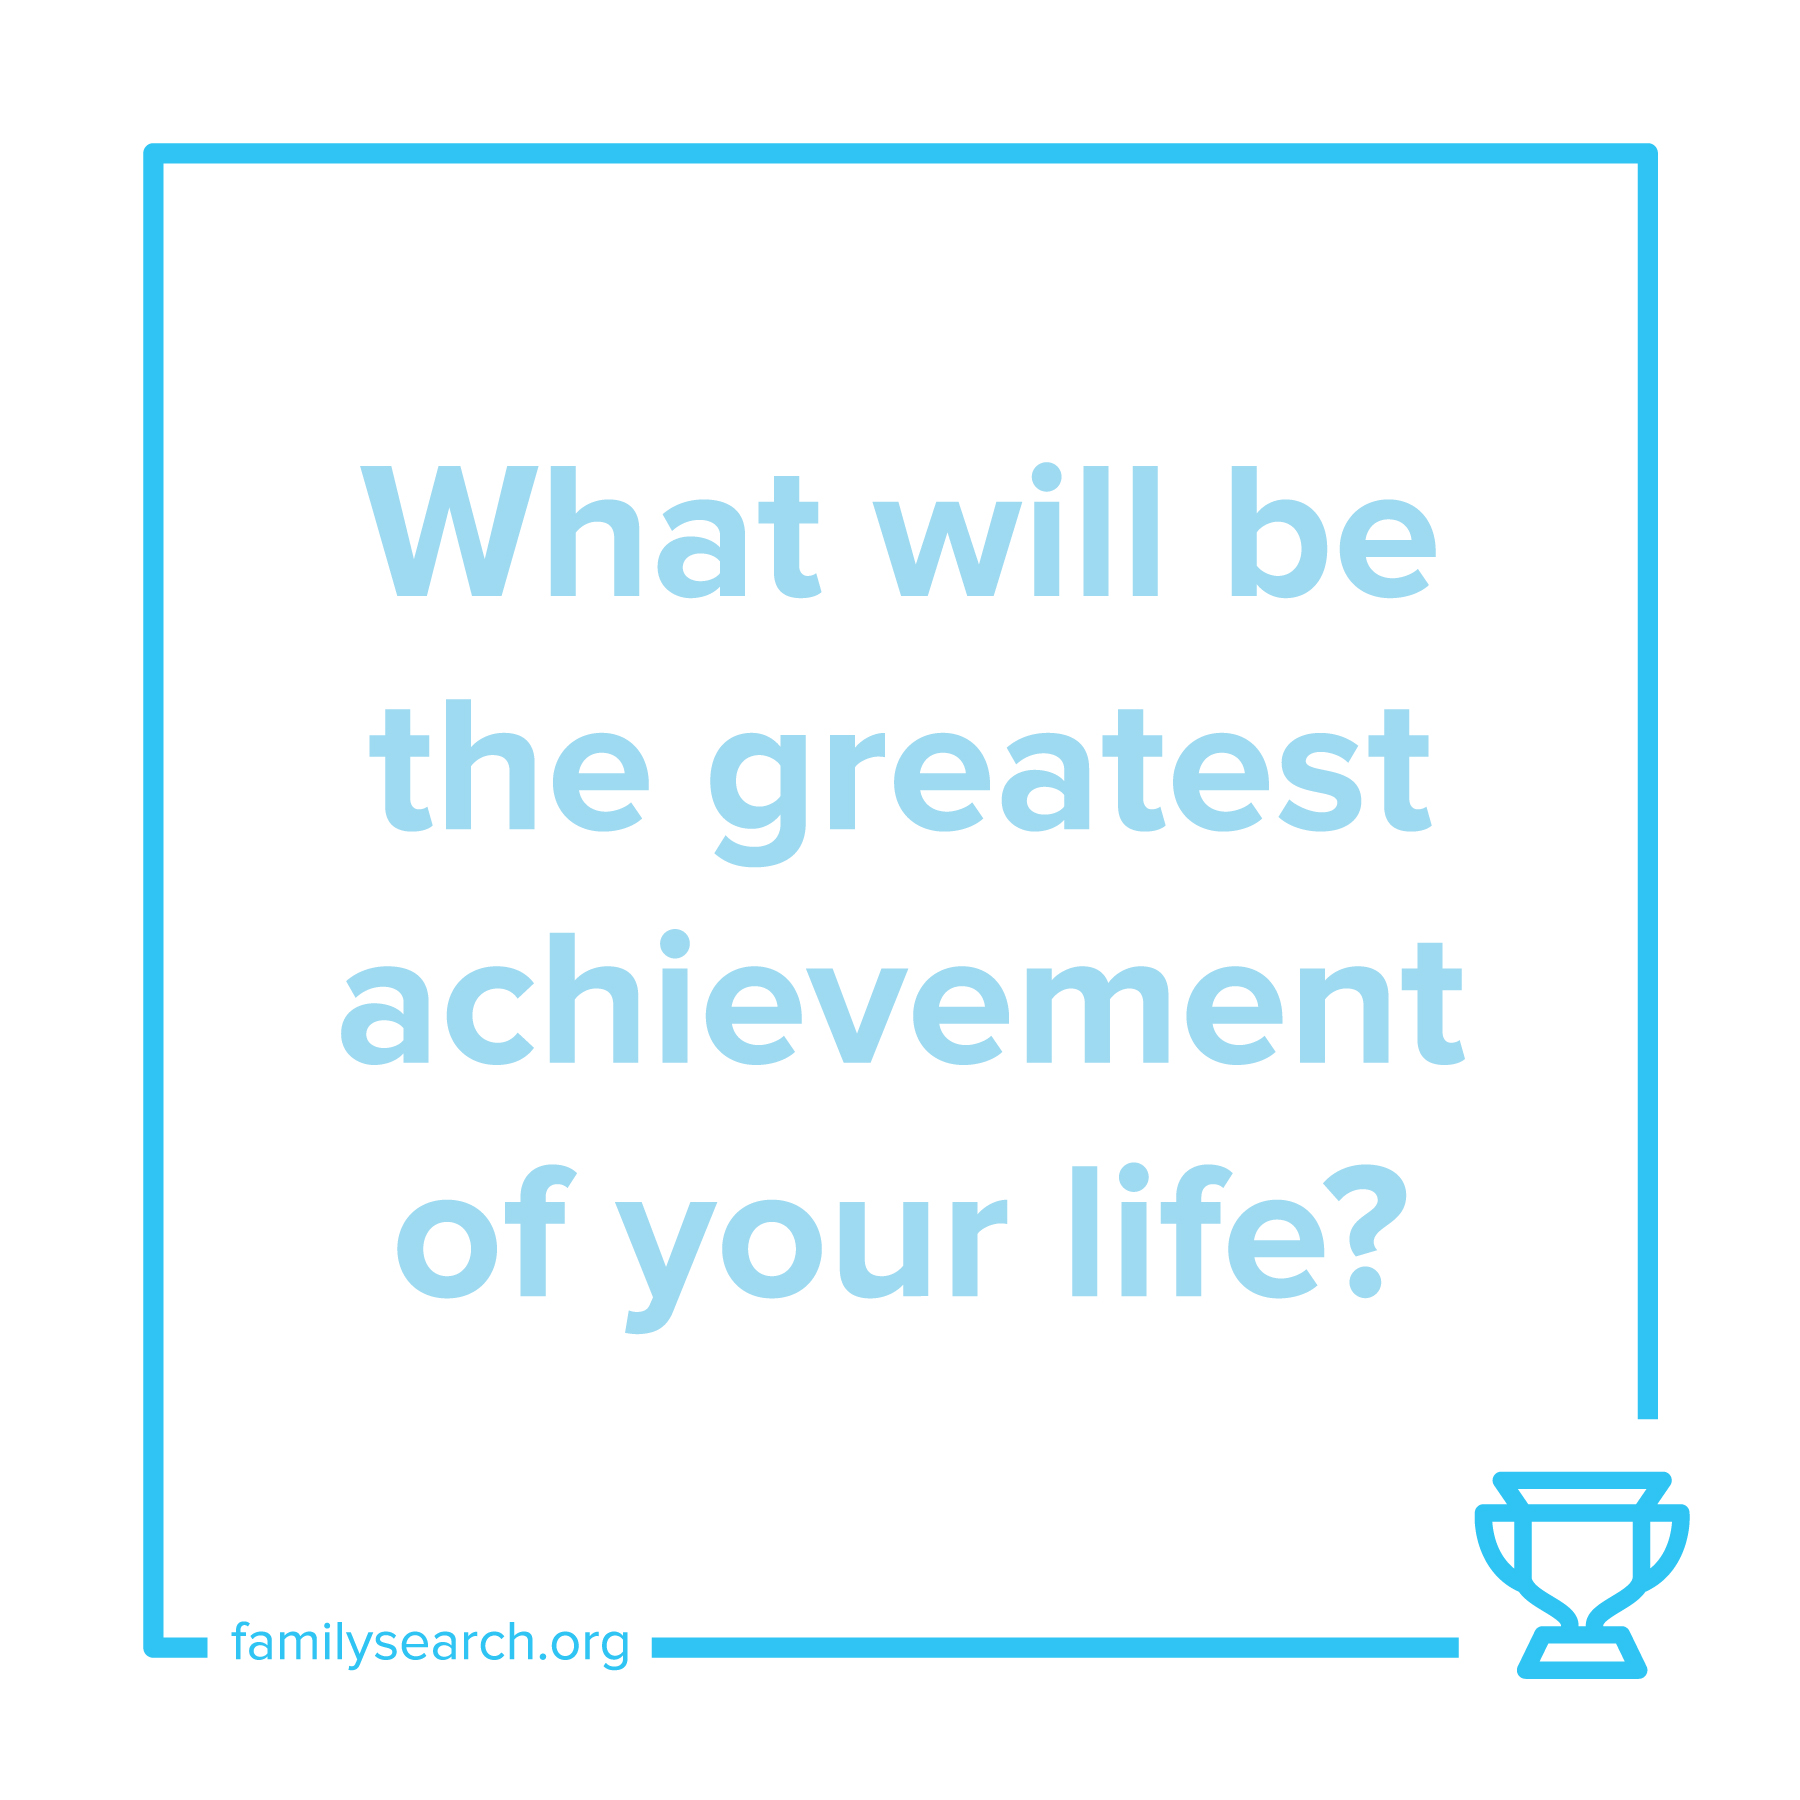 What will be the greatest achievement of your life?